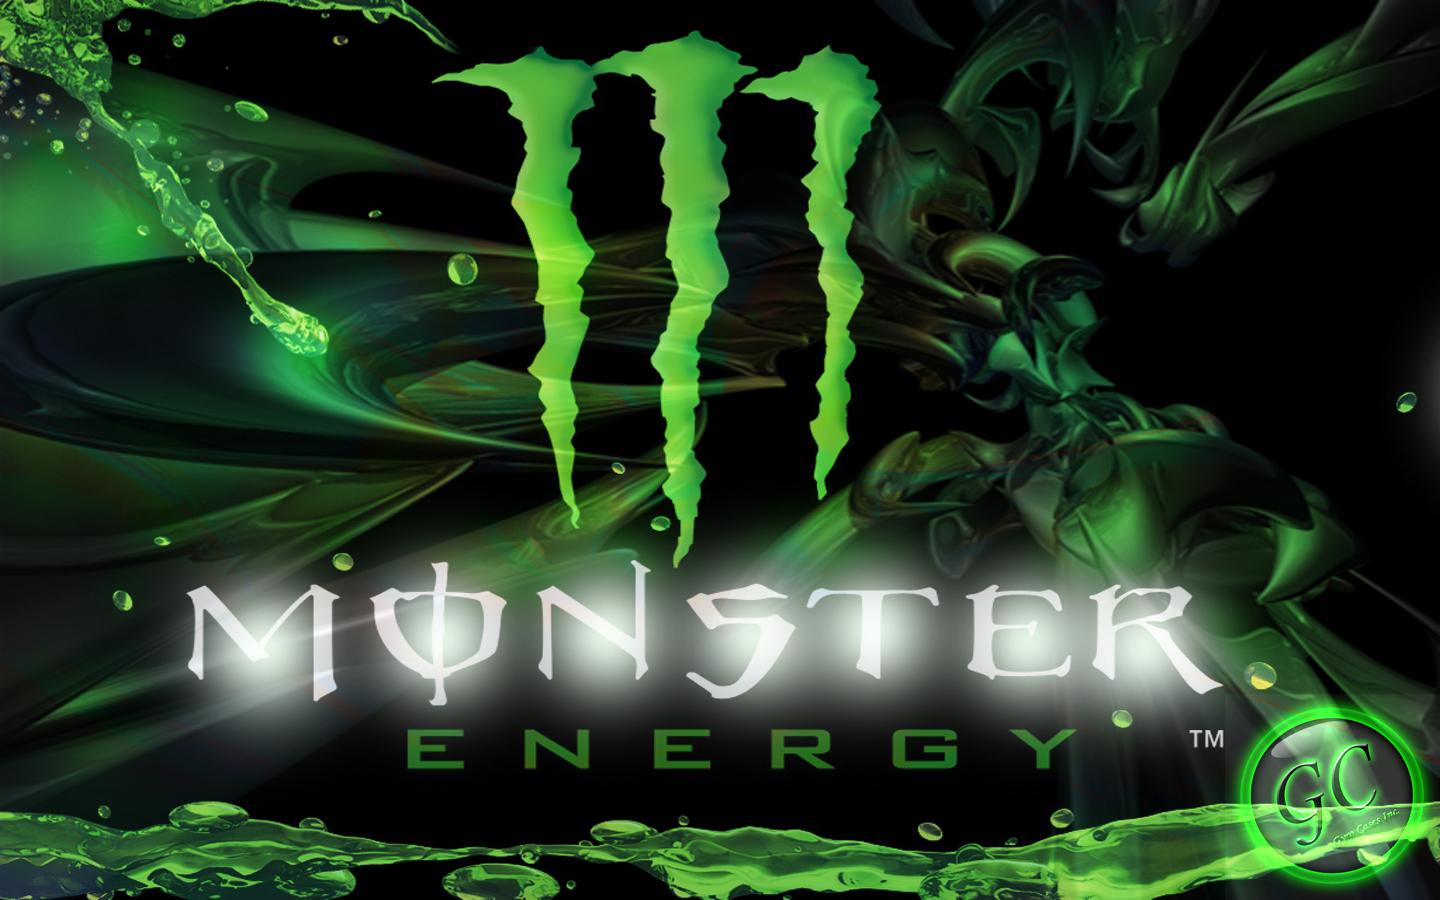 Group Of Flashing Monster Energy Drink Wallpaper